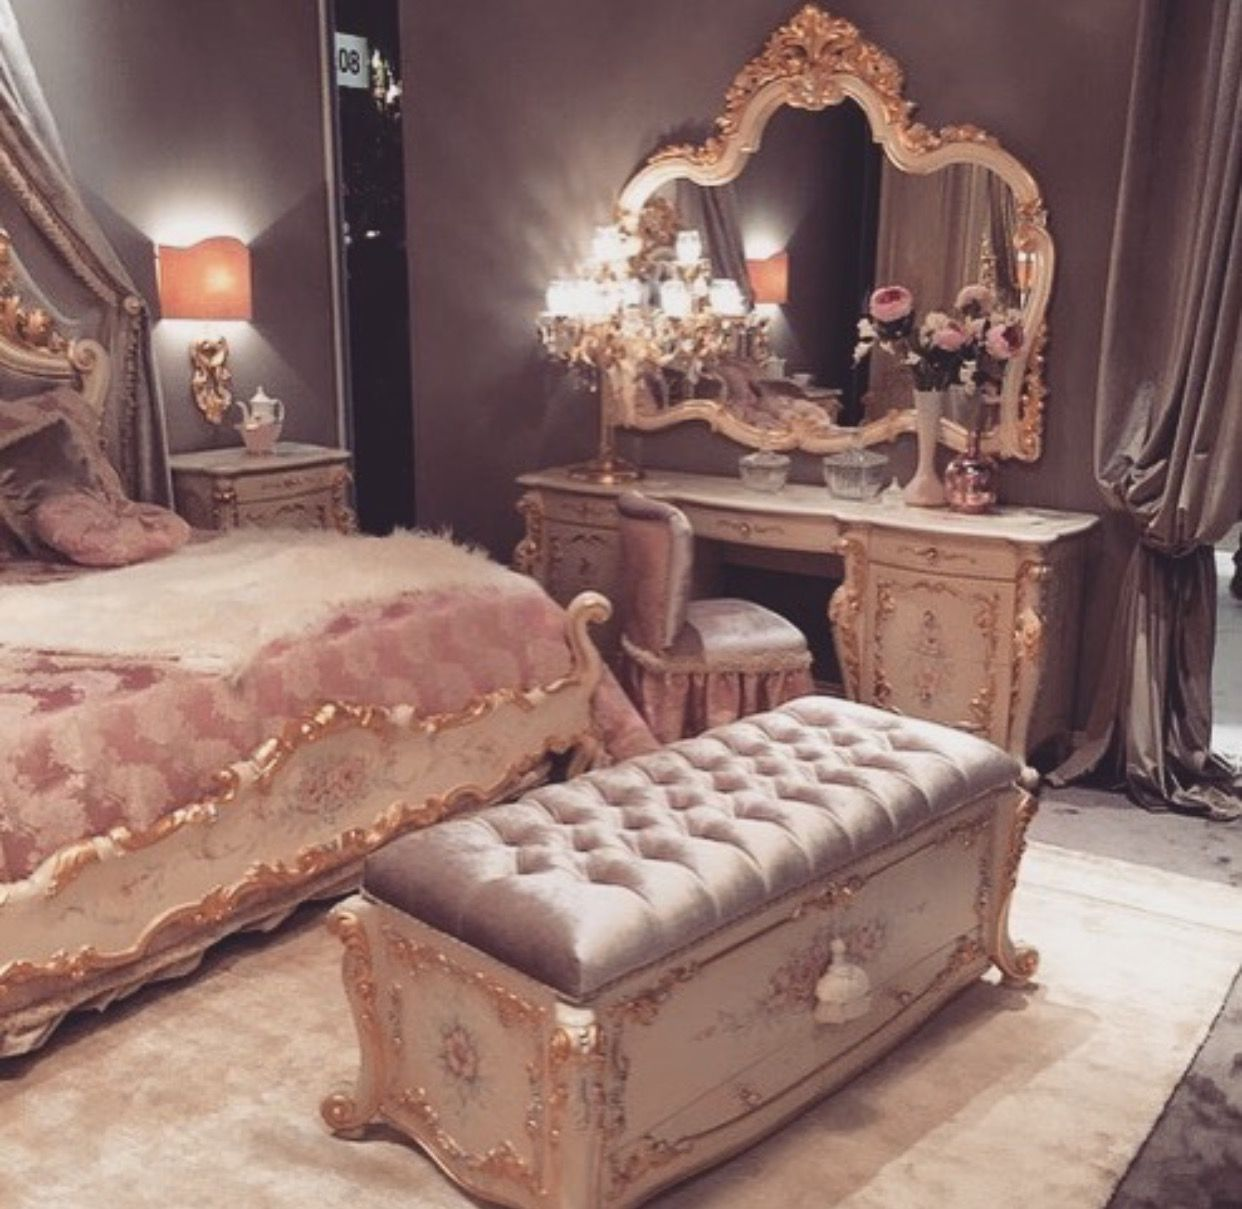 Glamorous Old Hollywood Bedroom Room Decor Home Decor Glam Bedroom